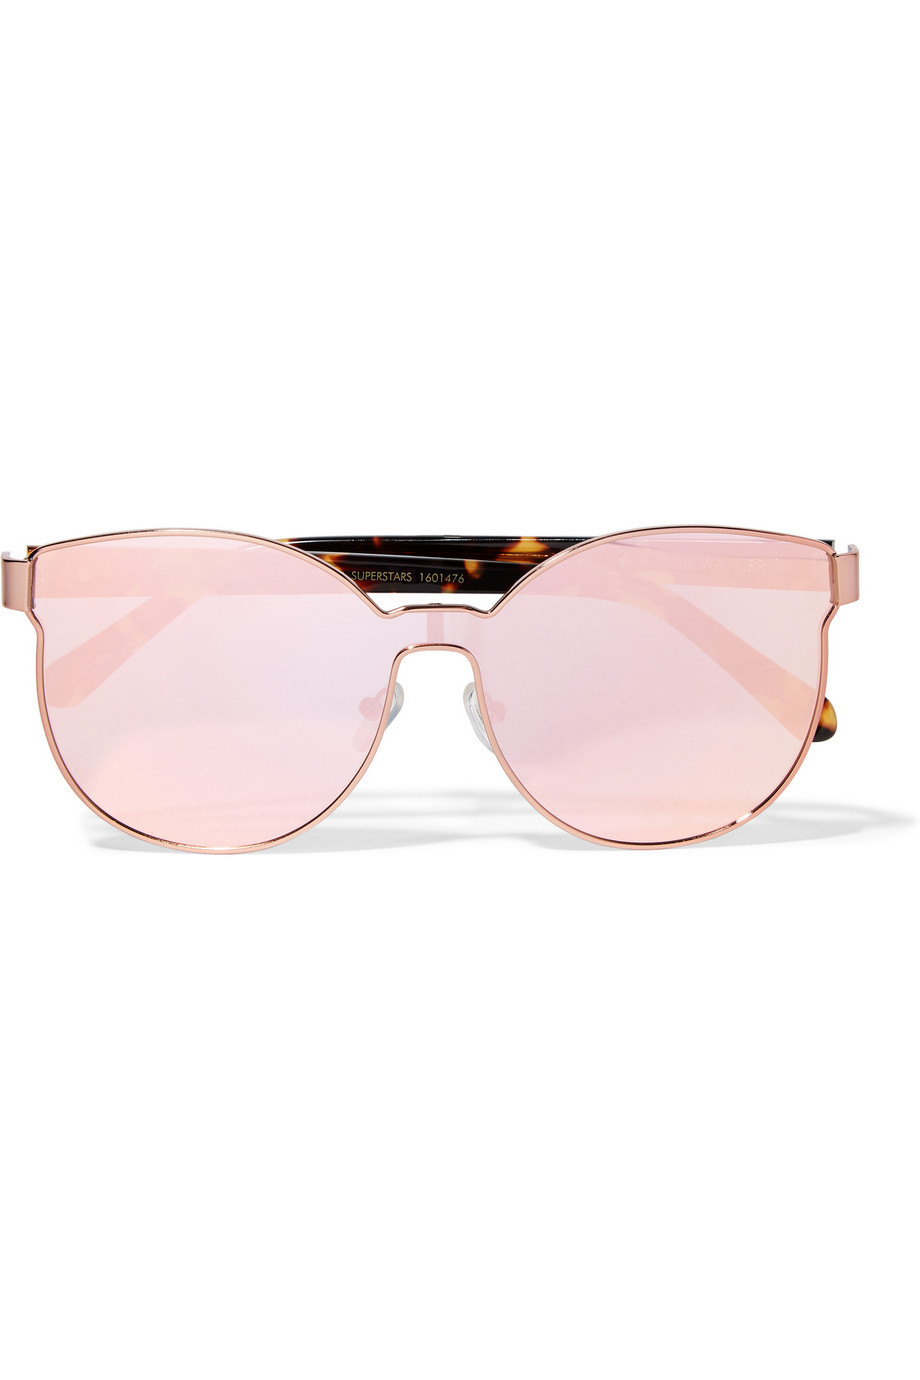 7dac361d33f3 Gentle Monster Black Sheep Sunglasses - Trans Peach Gold. Karen Walker Star  Sailor Superstars Round-Frame Acetate and Rose Gold-Tone Mirrored Sunglasses